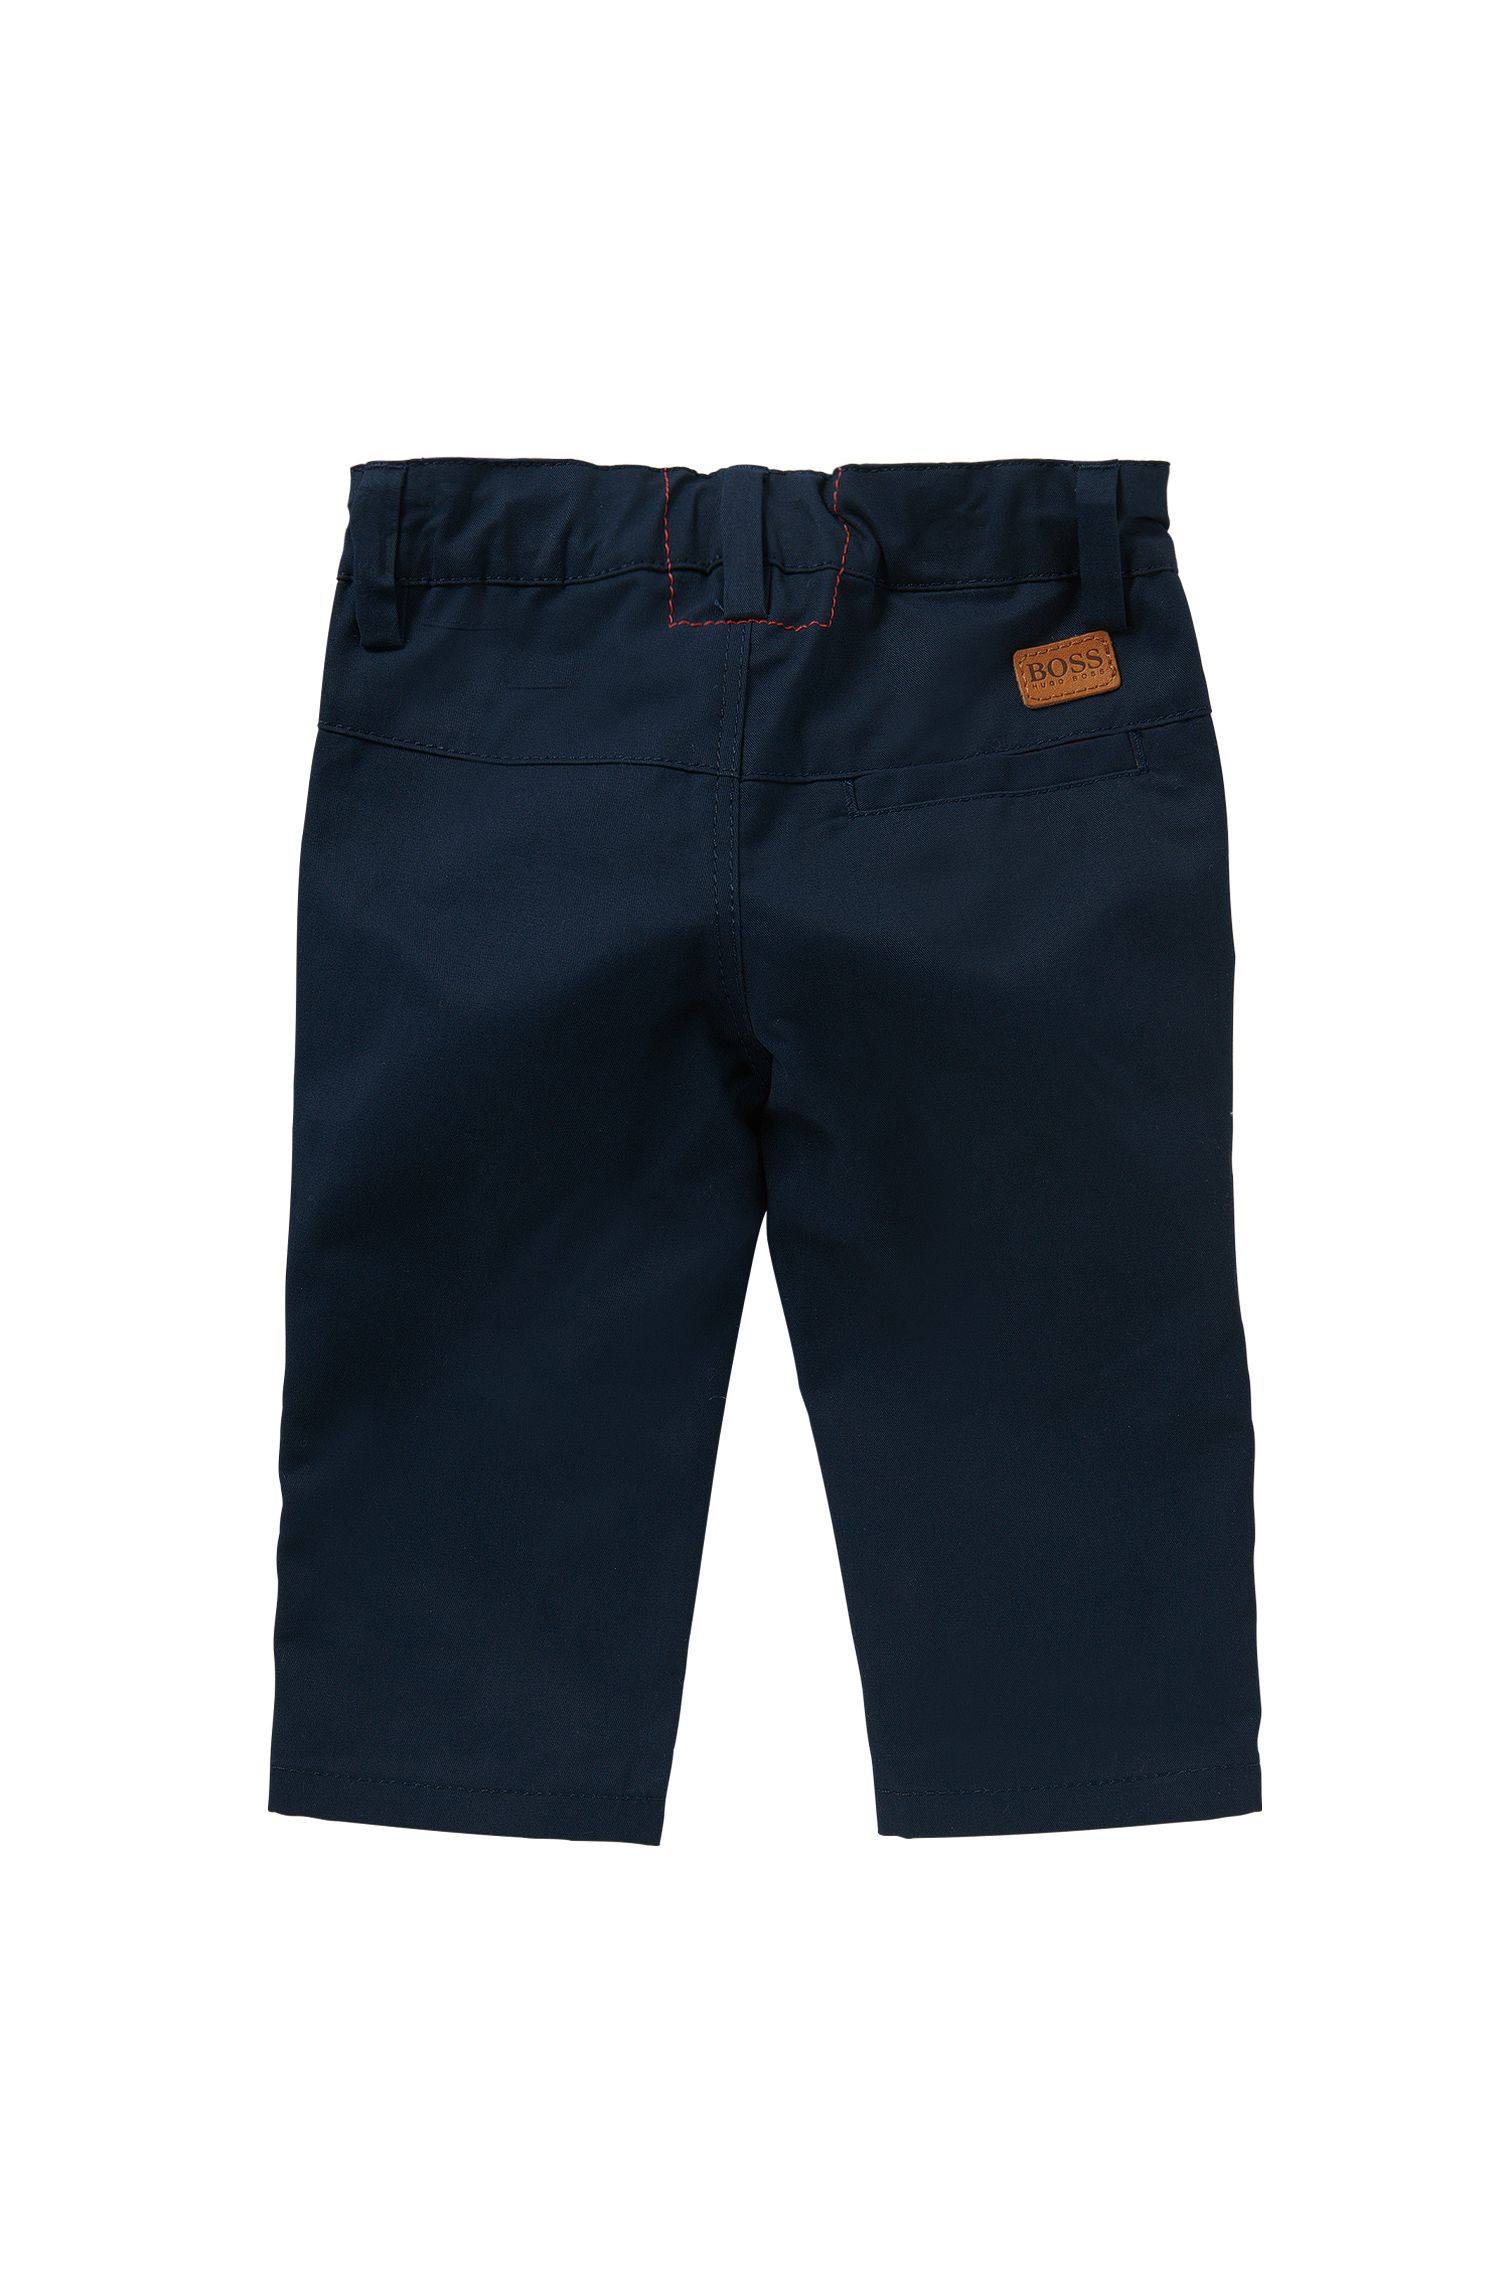 'J04227' | Toddler Cotton Twill Pants